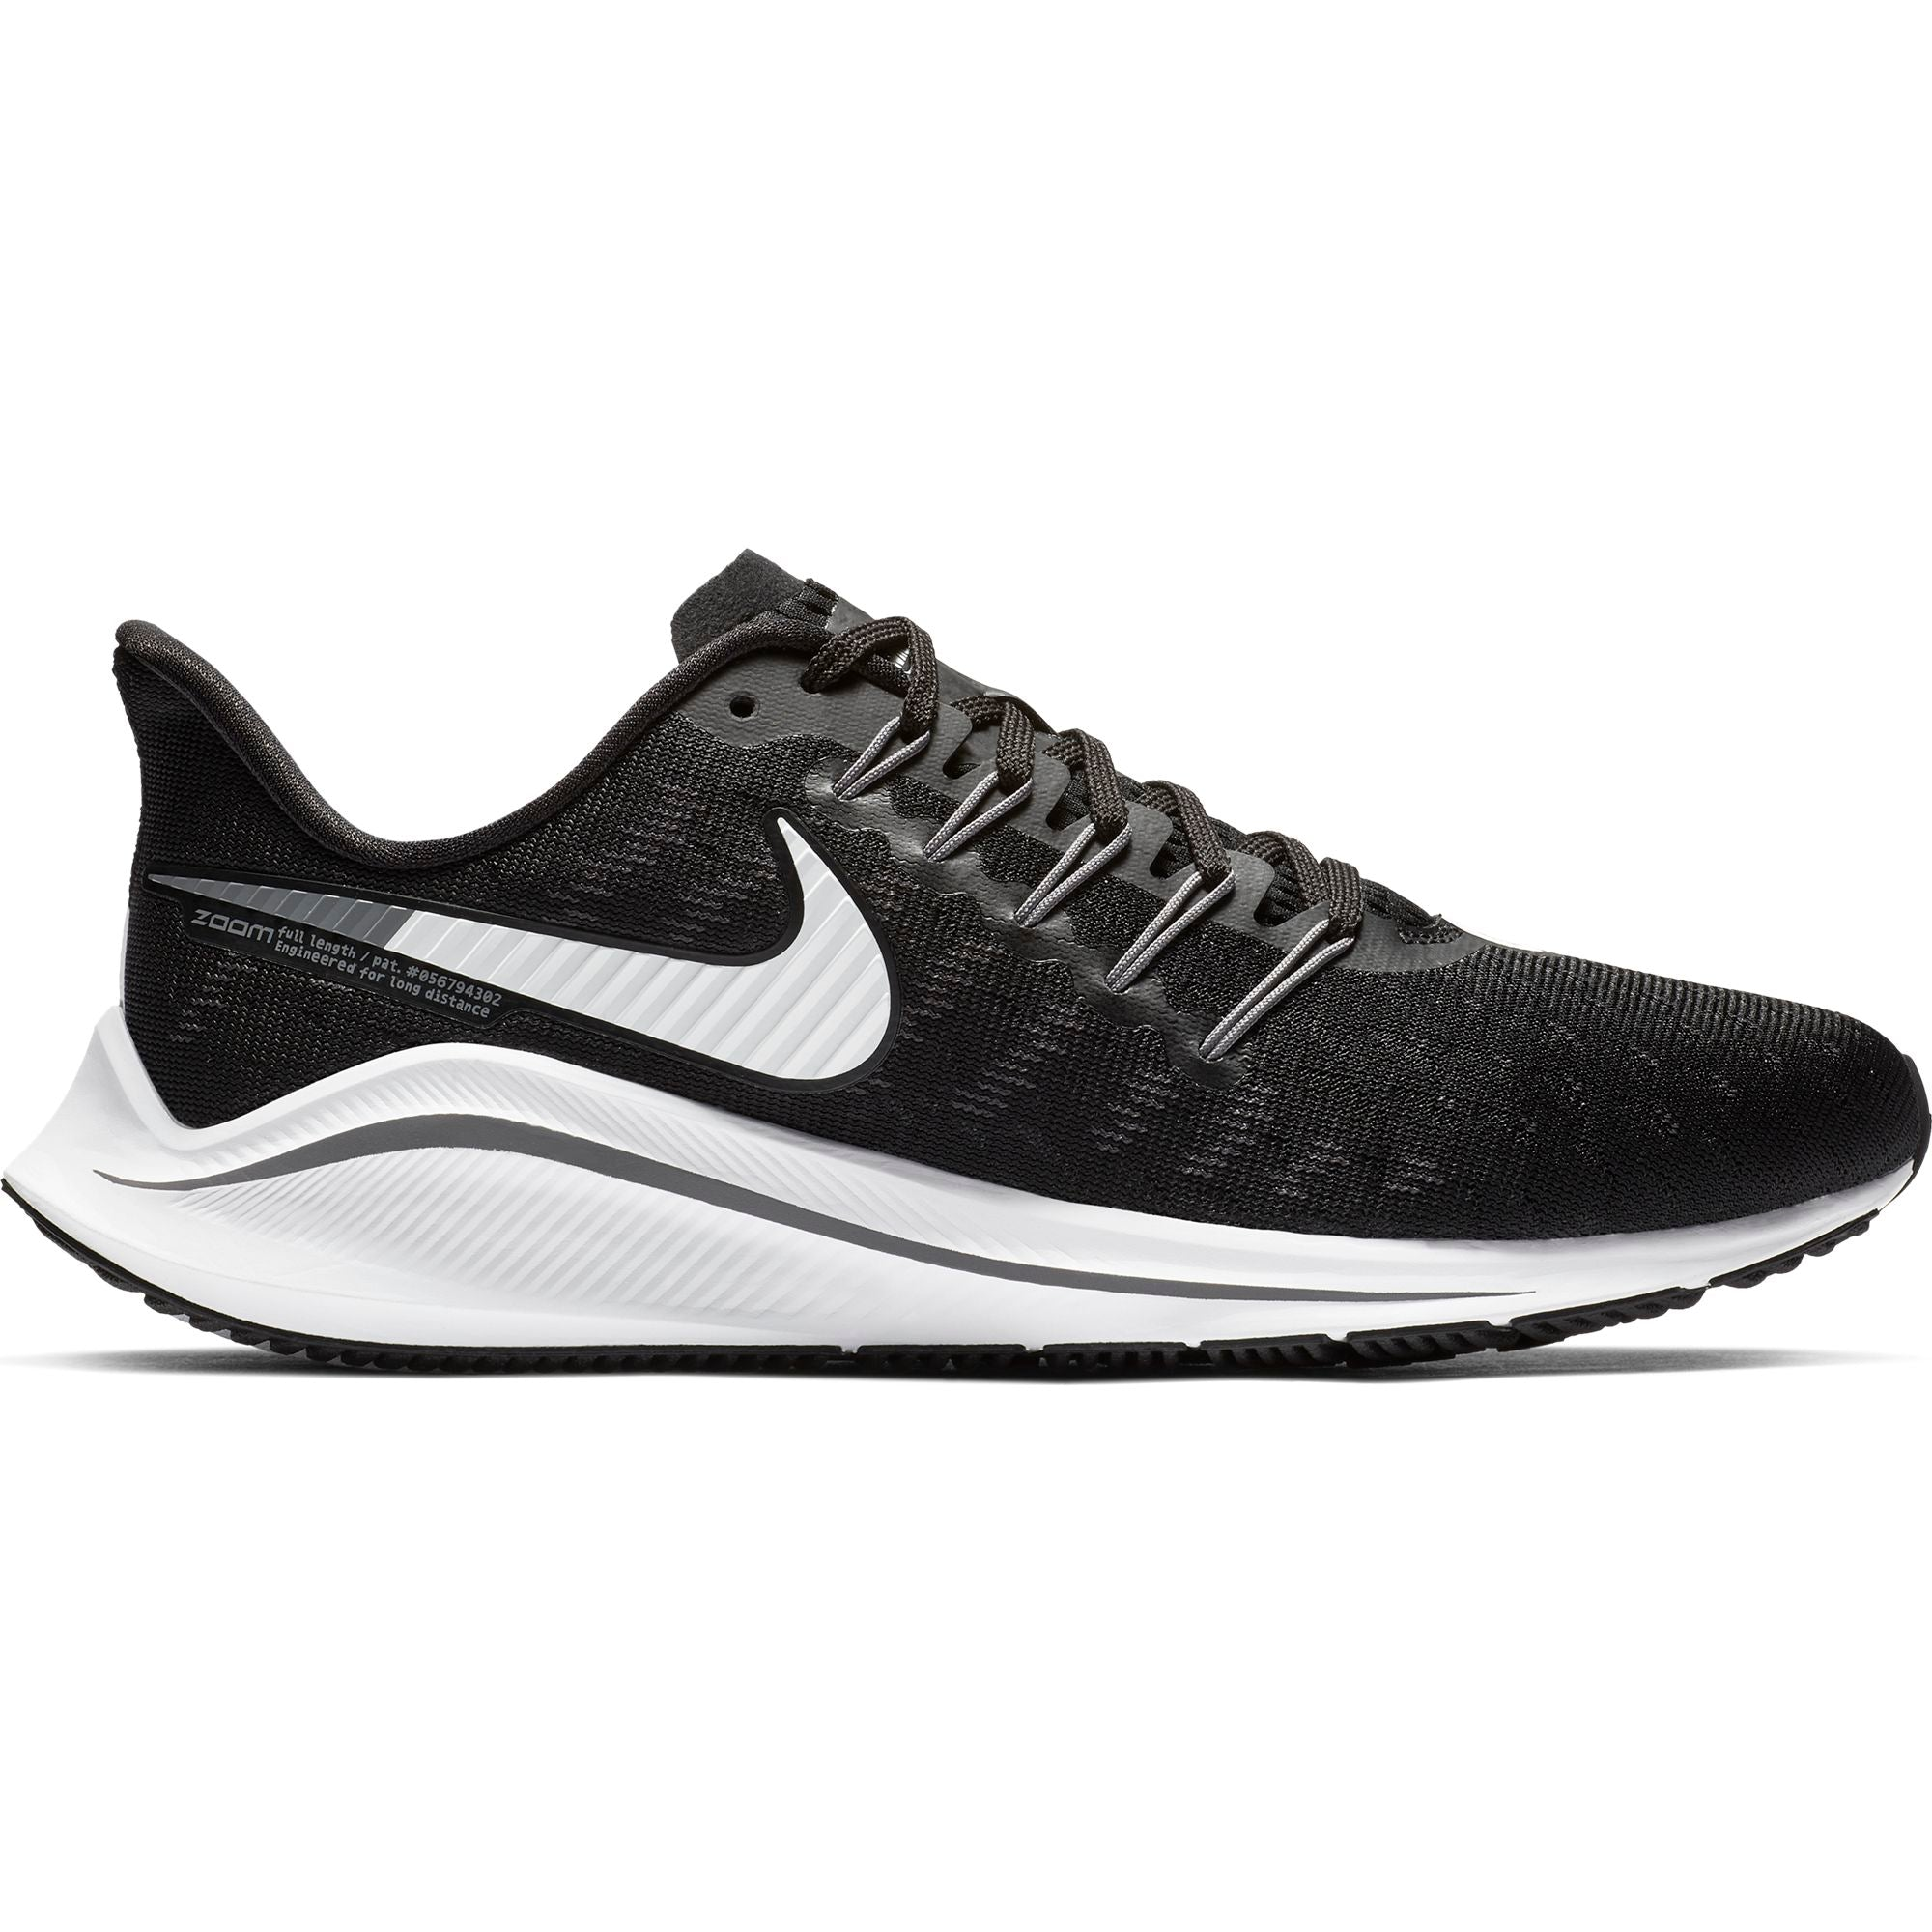 cffbc8b11b97f Women s Air Zoom Vomero 14 Running Shoe (D-Wide) - Black White Thunder –  Gazelle Sports